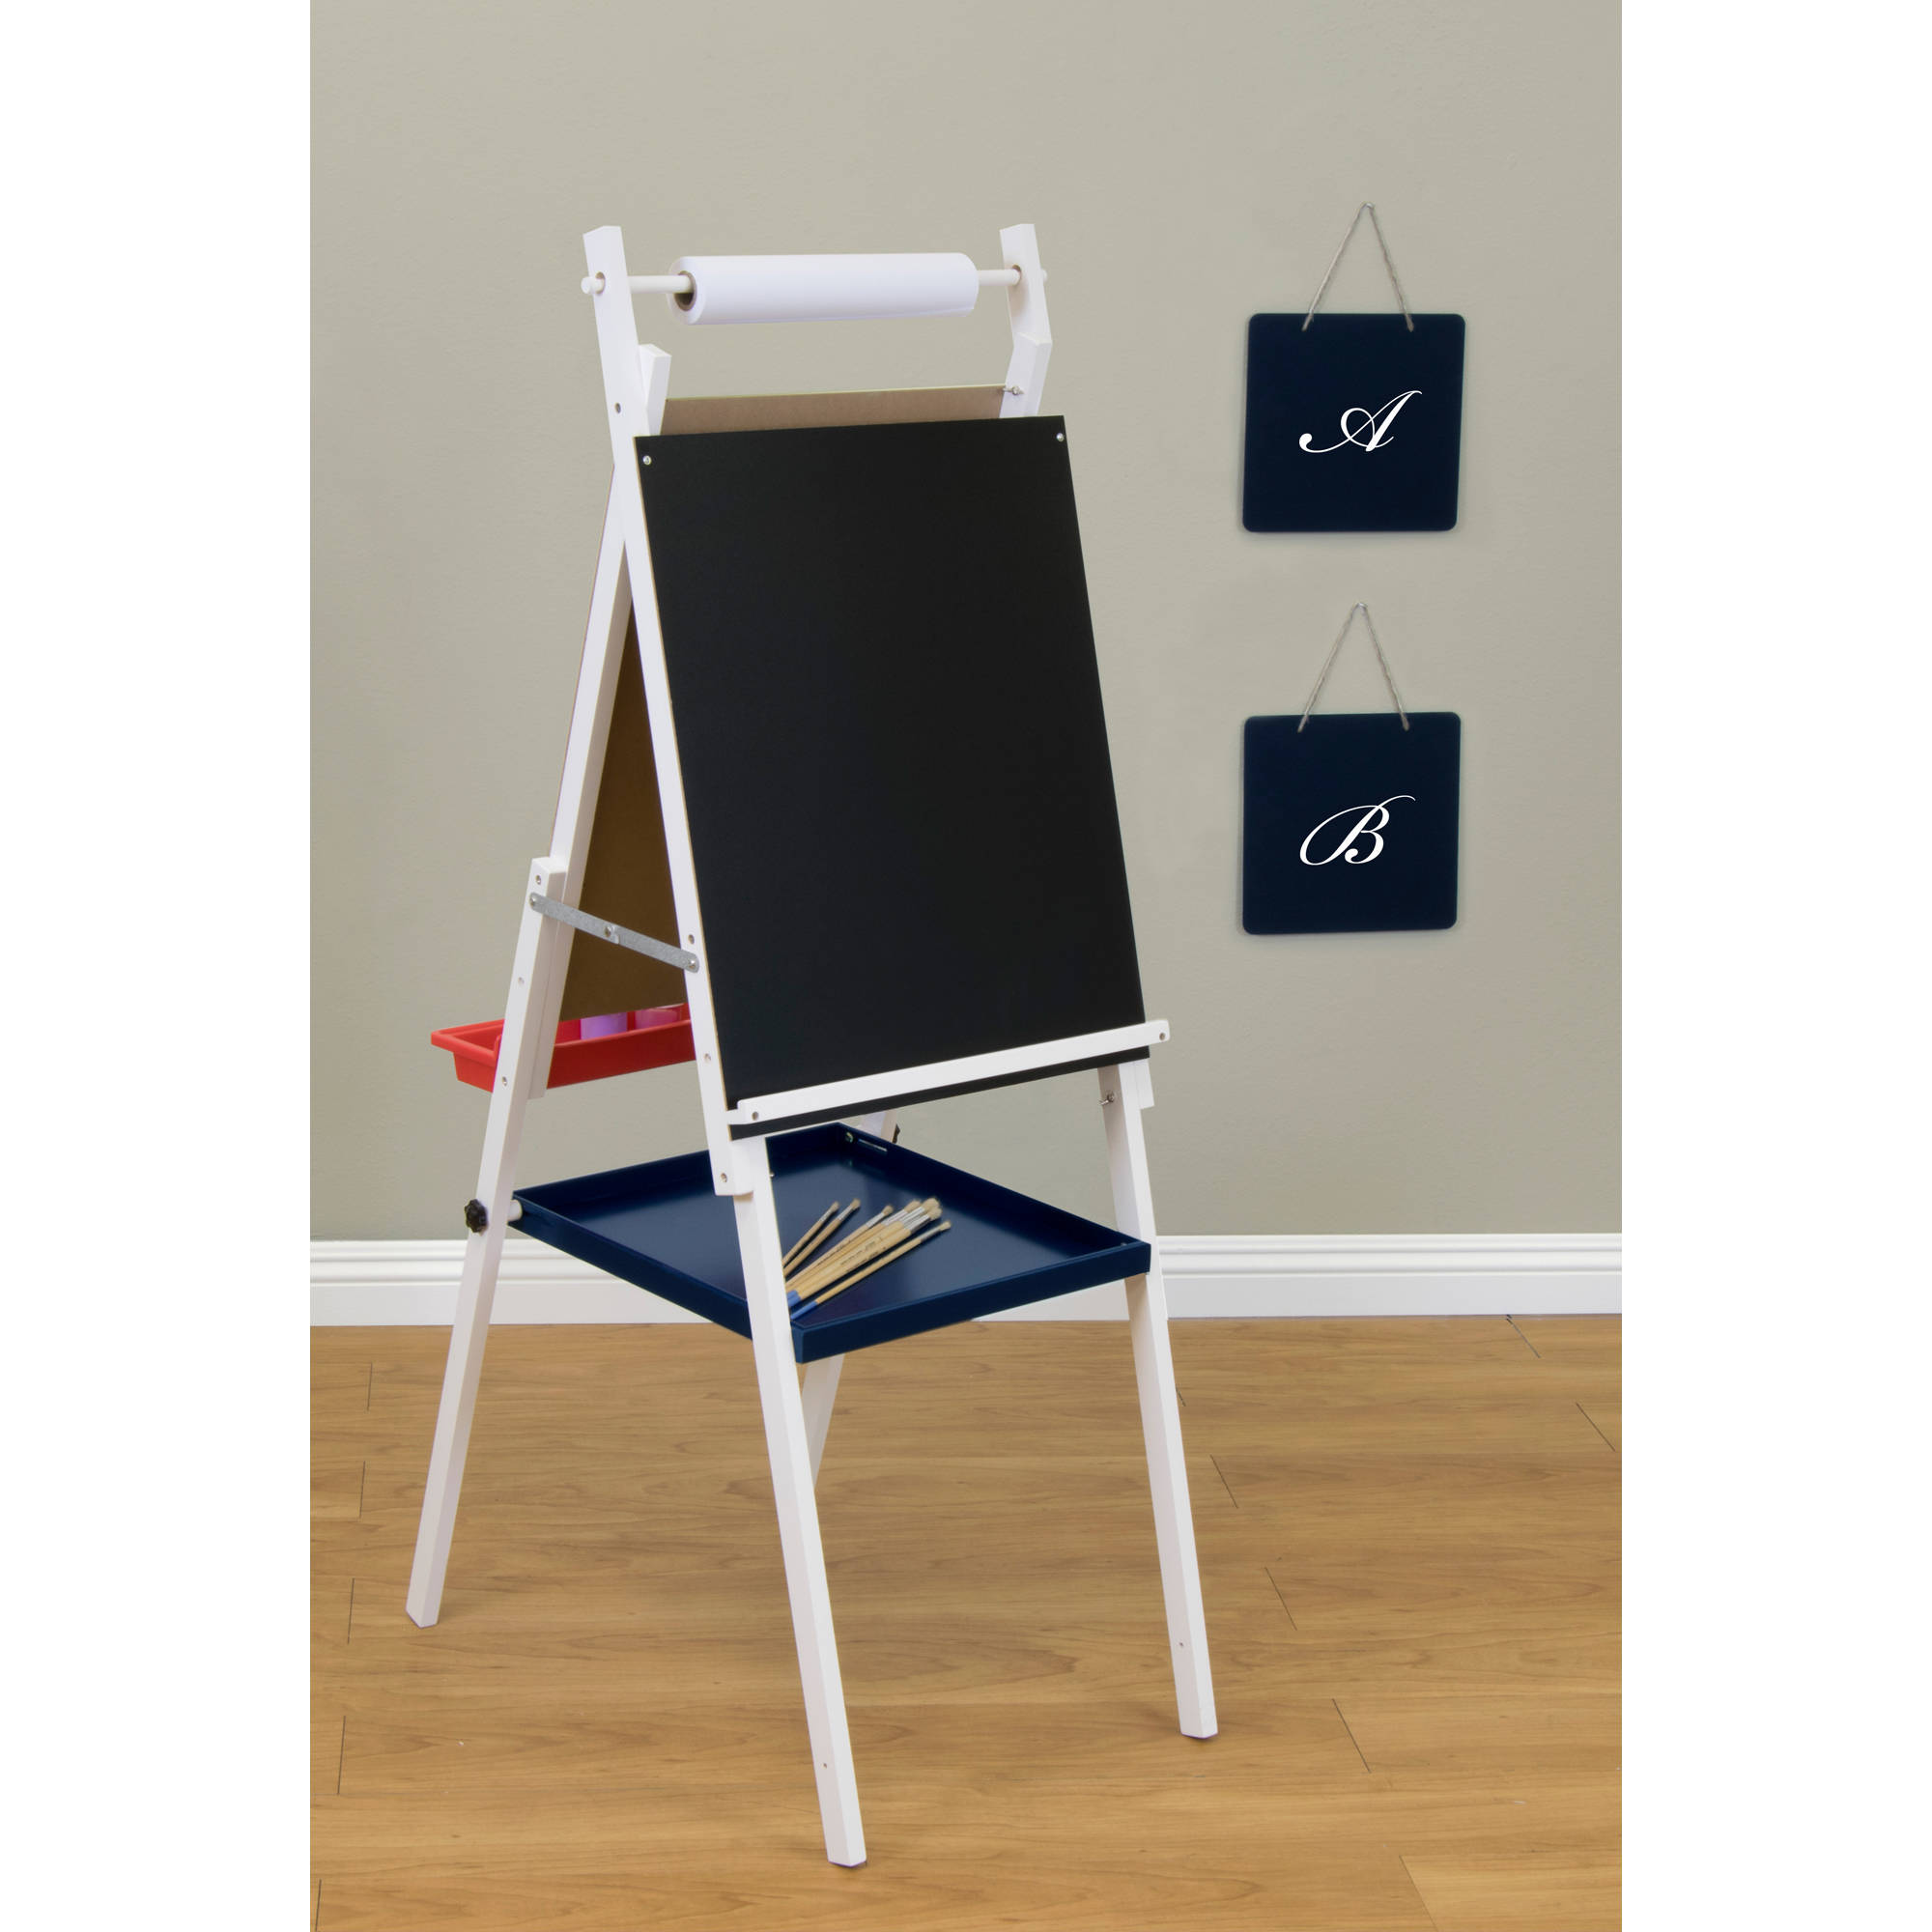 Studio Designs Kids Easel With Storage, White